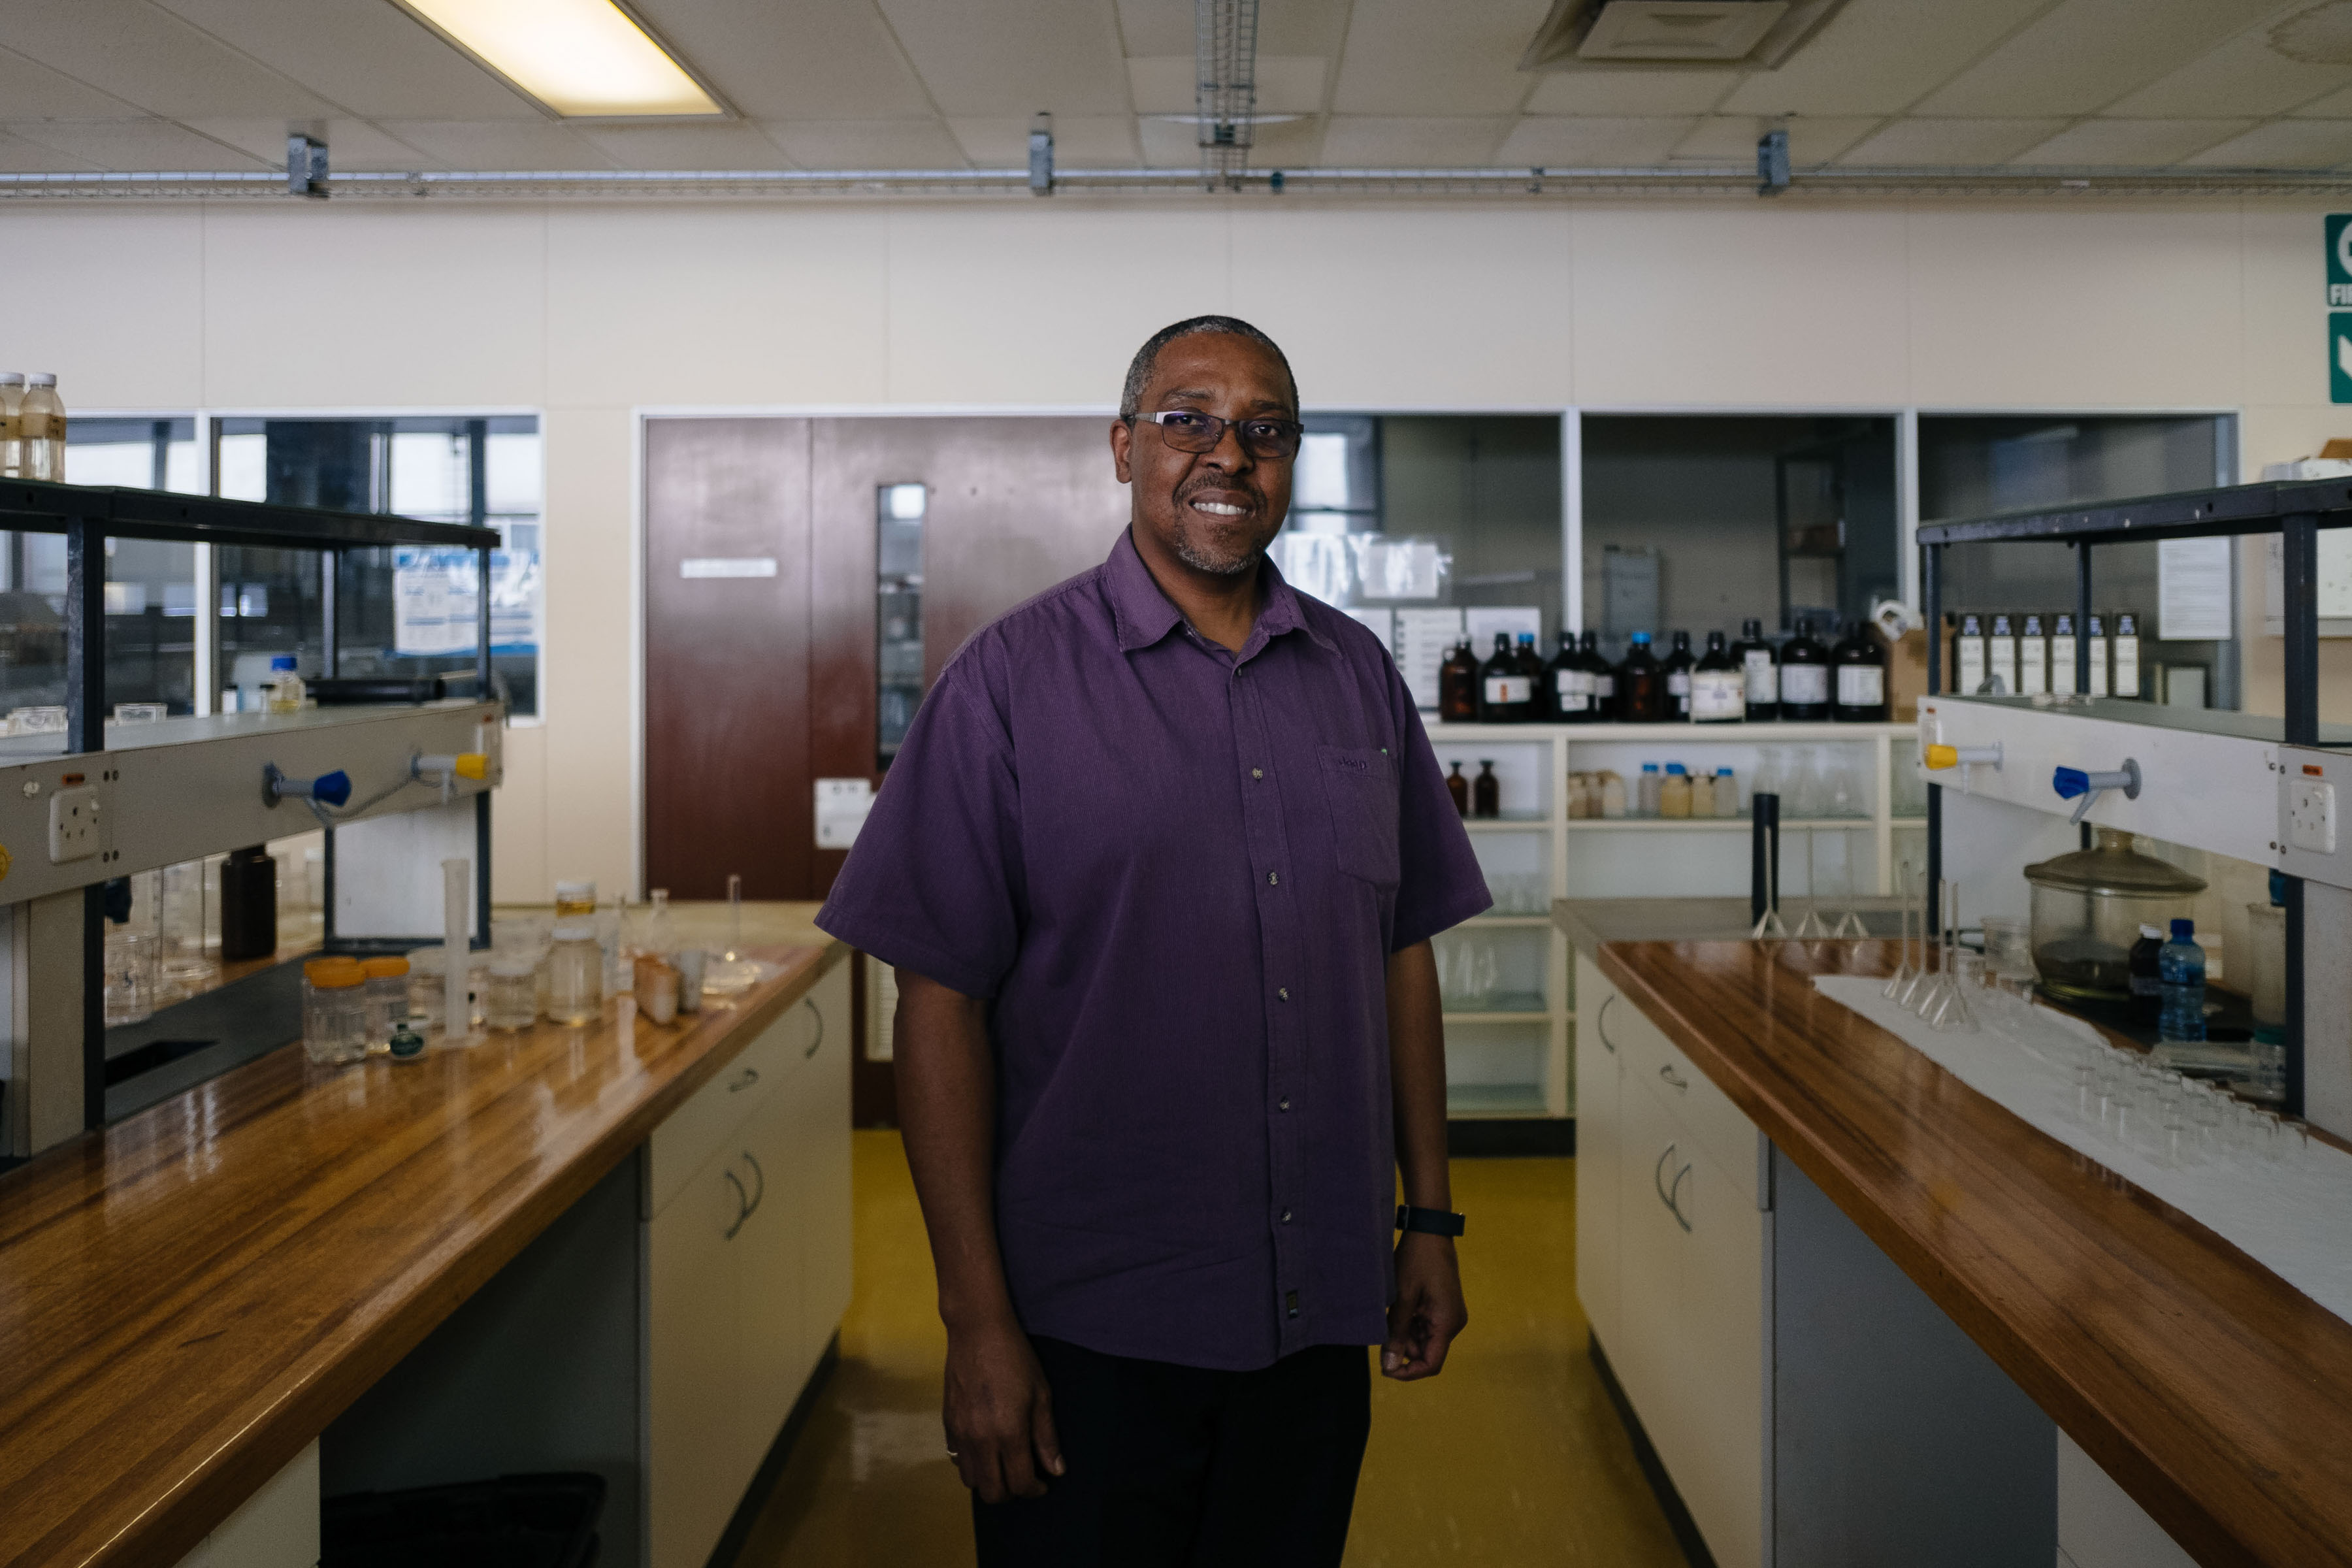 14 November 2019: Phumelele Gama, a wetland expert and head of the botany department at Nelson Mandela University, supports the idea of desalination plants as he says overreliance on boreholes has long-term consequences for groundwater.